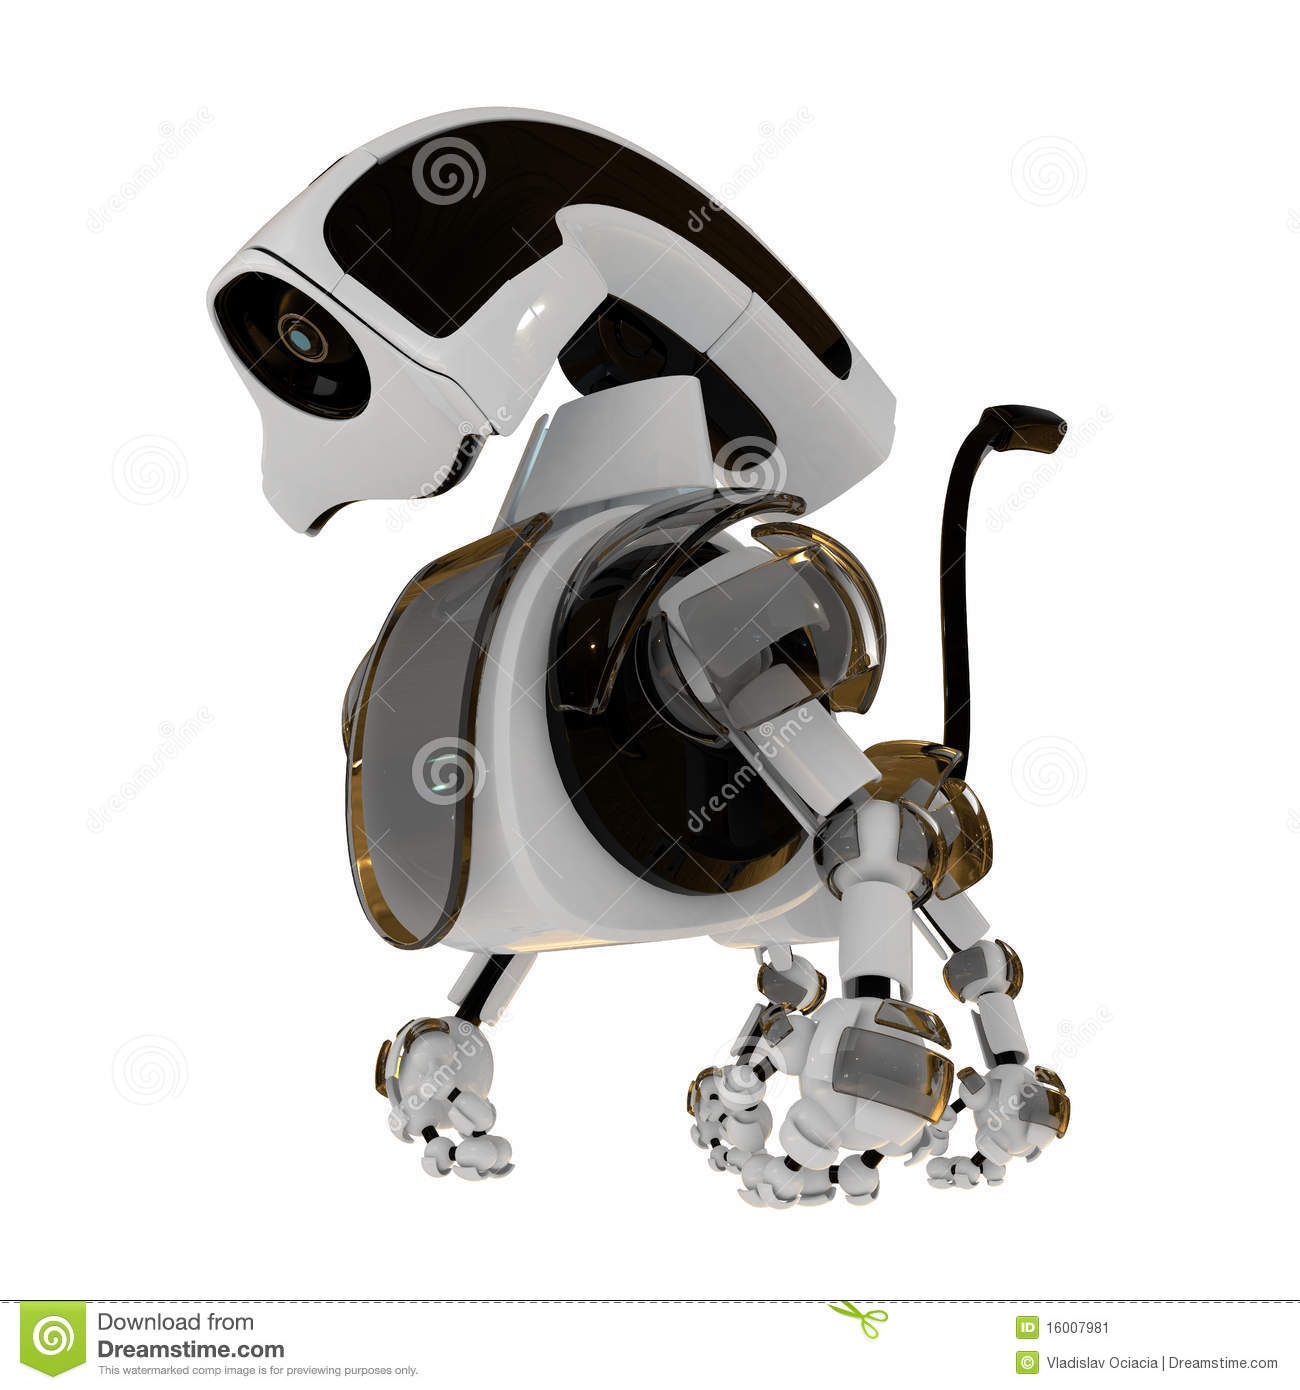 Cool Robot Toys : Robotic toy stock illustration cartoondealer